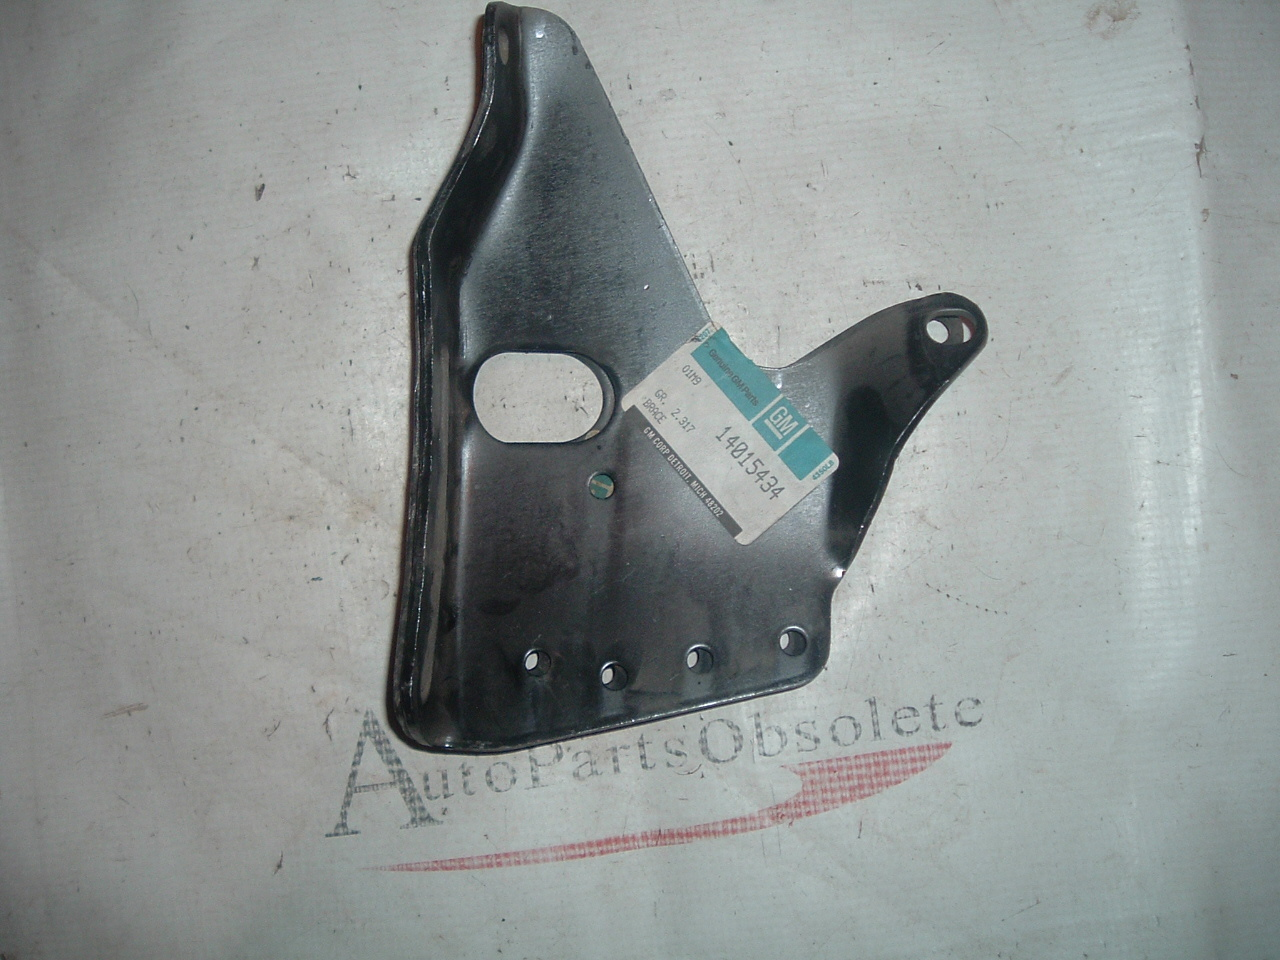 1969 70 71 72 72 73 74 75 camaro chevelle nova alternator bracket nos gm # 14015434 (z 15015434)